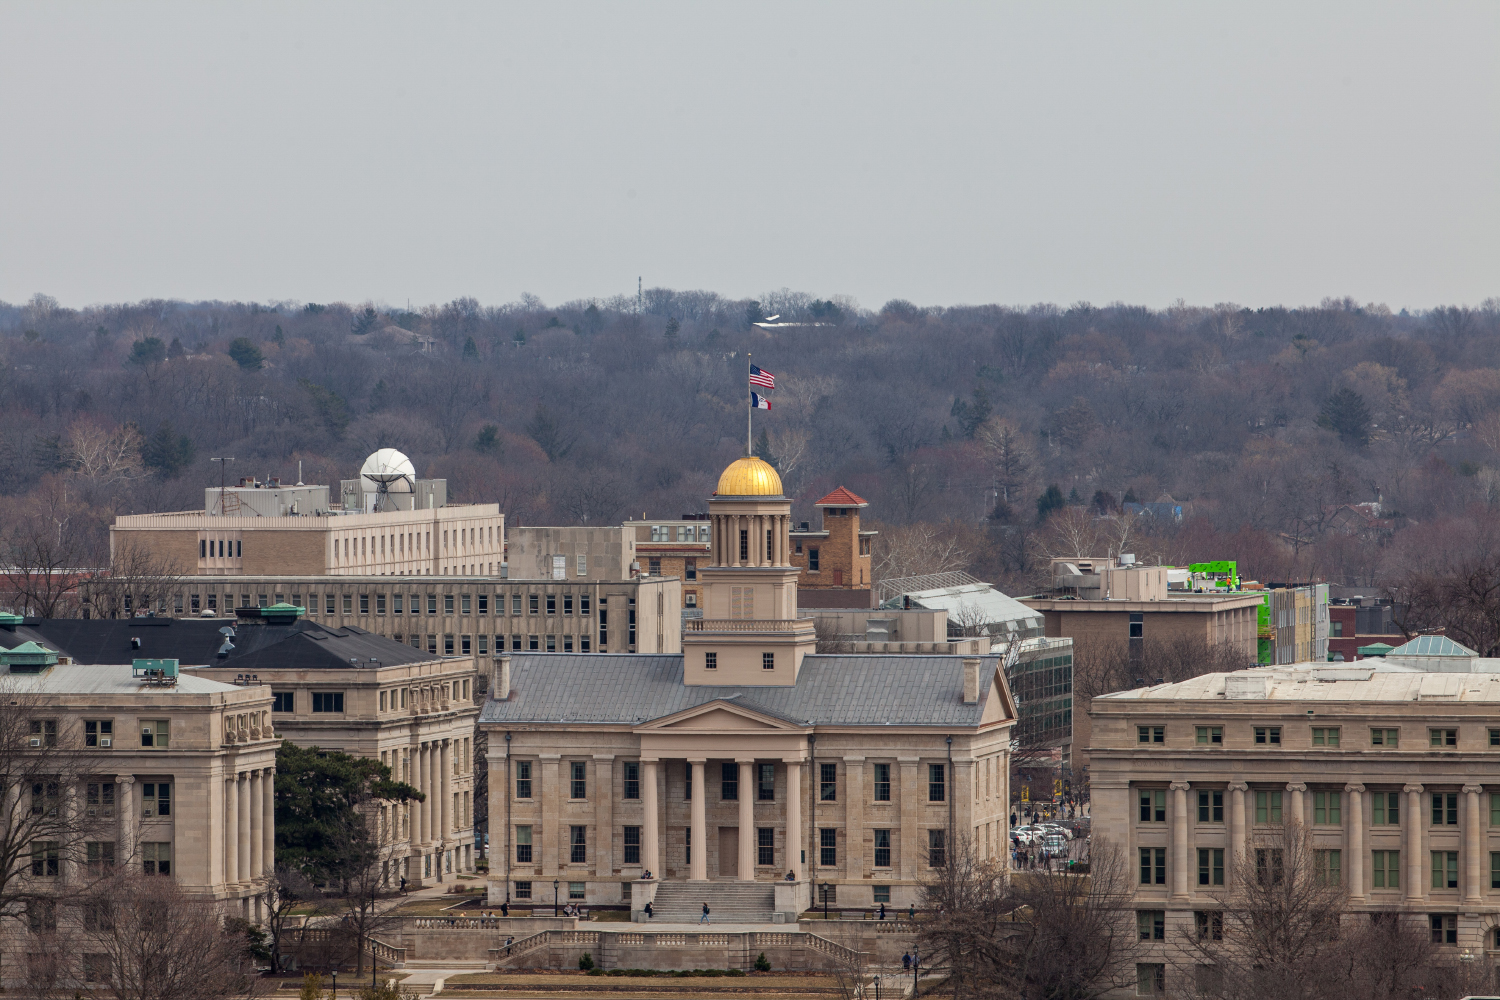 The Old Capital from the roof of UIHC in Iowa City, Iowa on March 25, 2019.